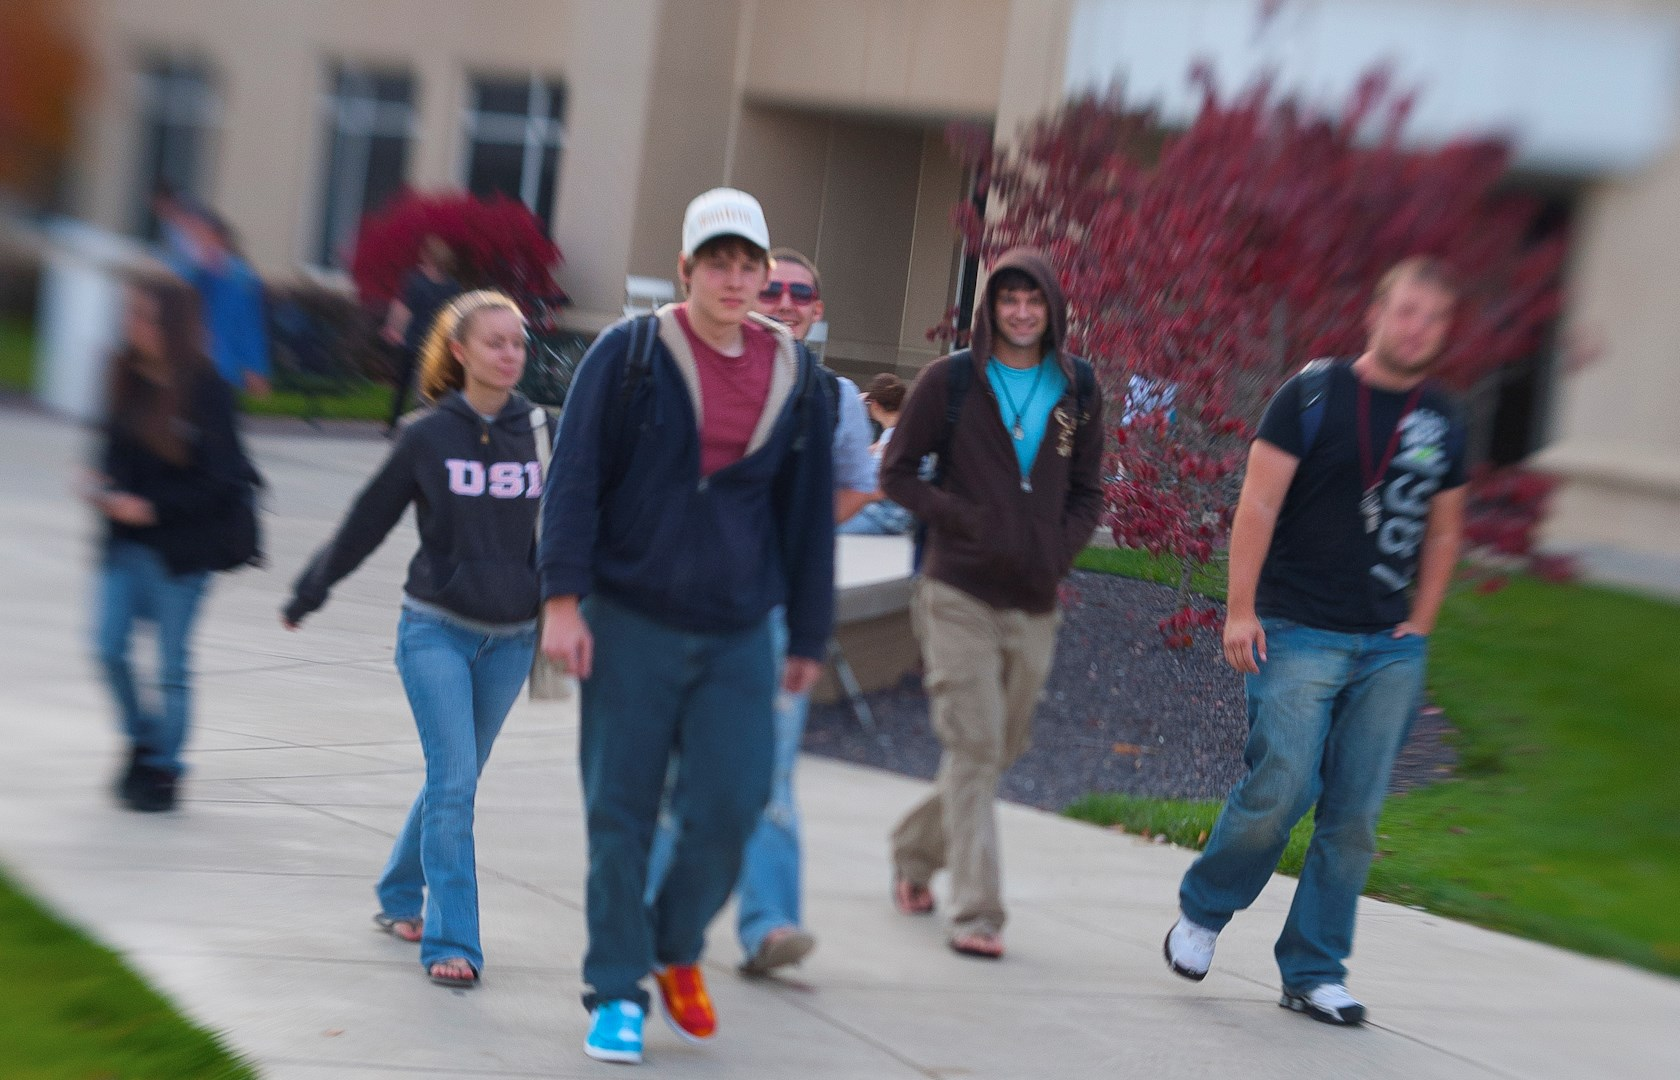 horiz students on Liberal Arts walkway